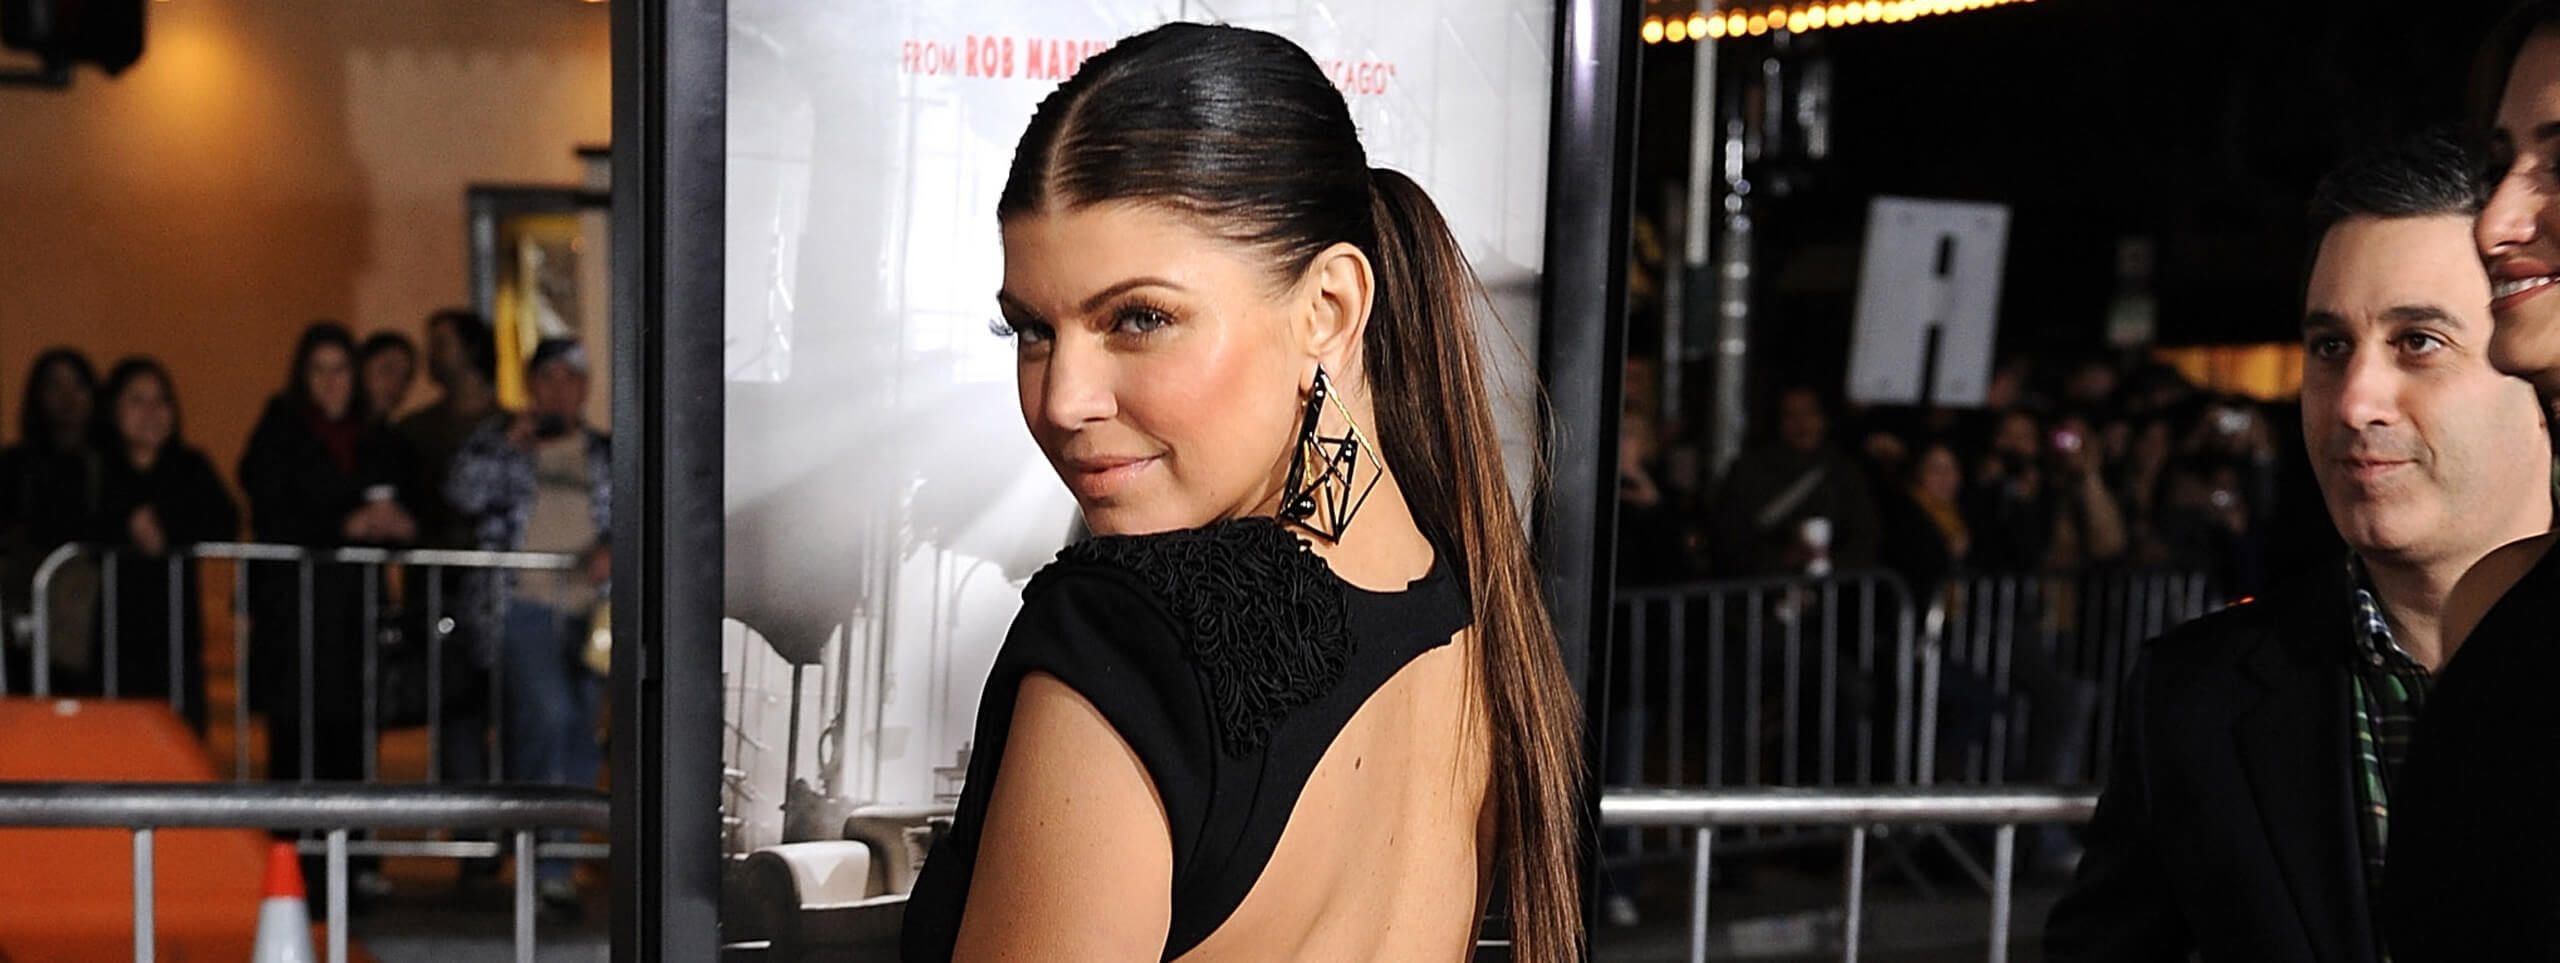 Fergie Black Eyed Peas wears long ponytail hairstyle